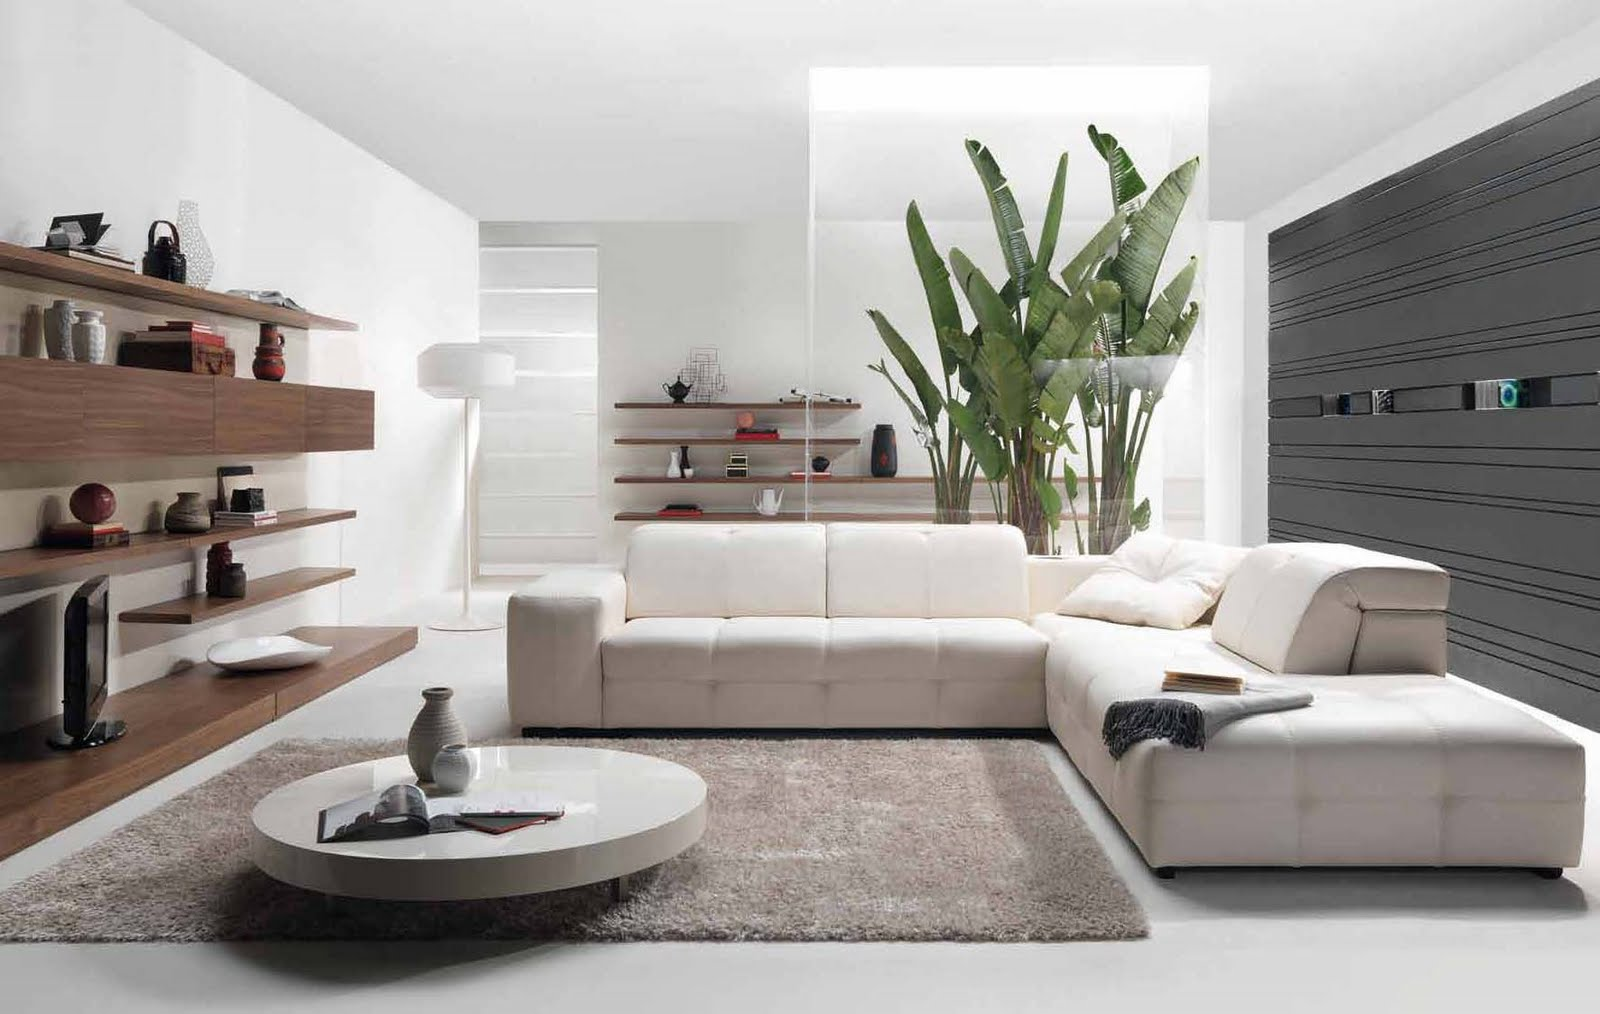 Future house design modern living room interior design Design interior